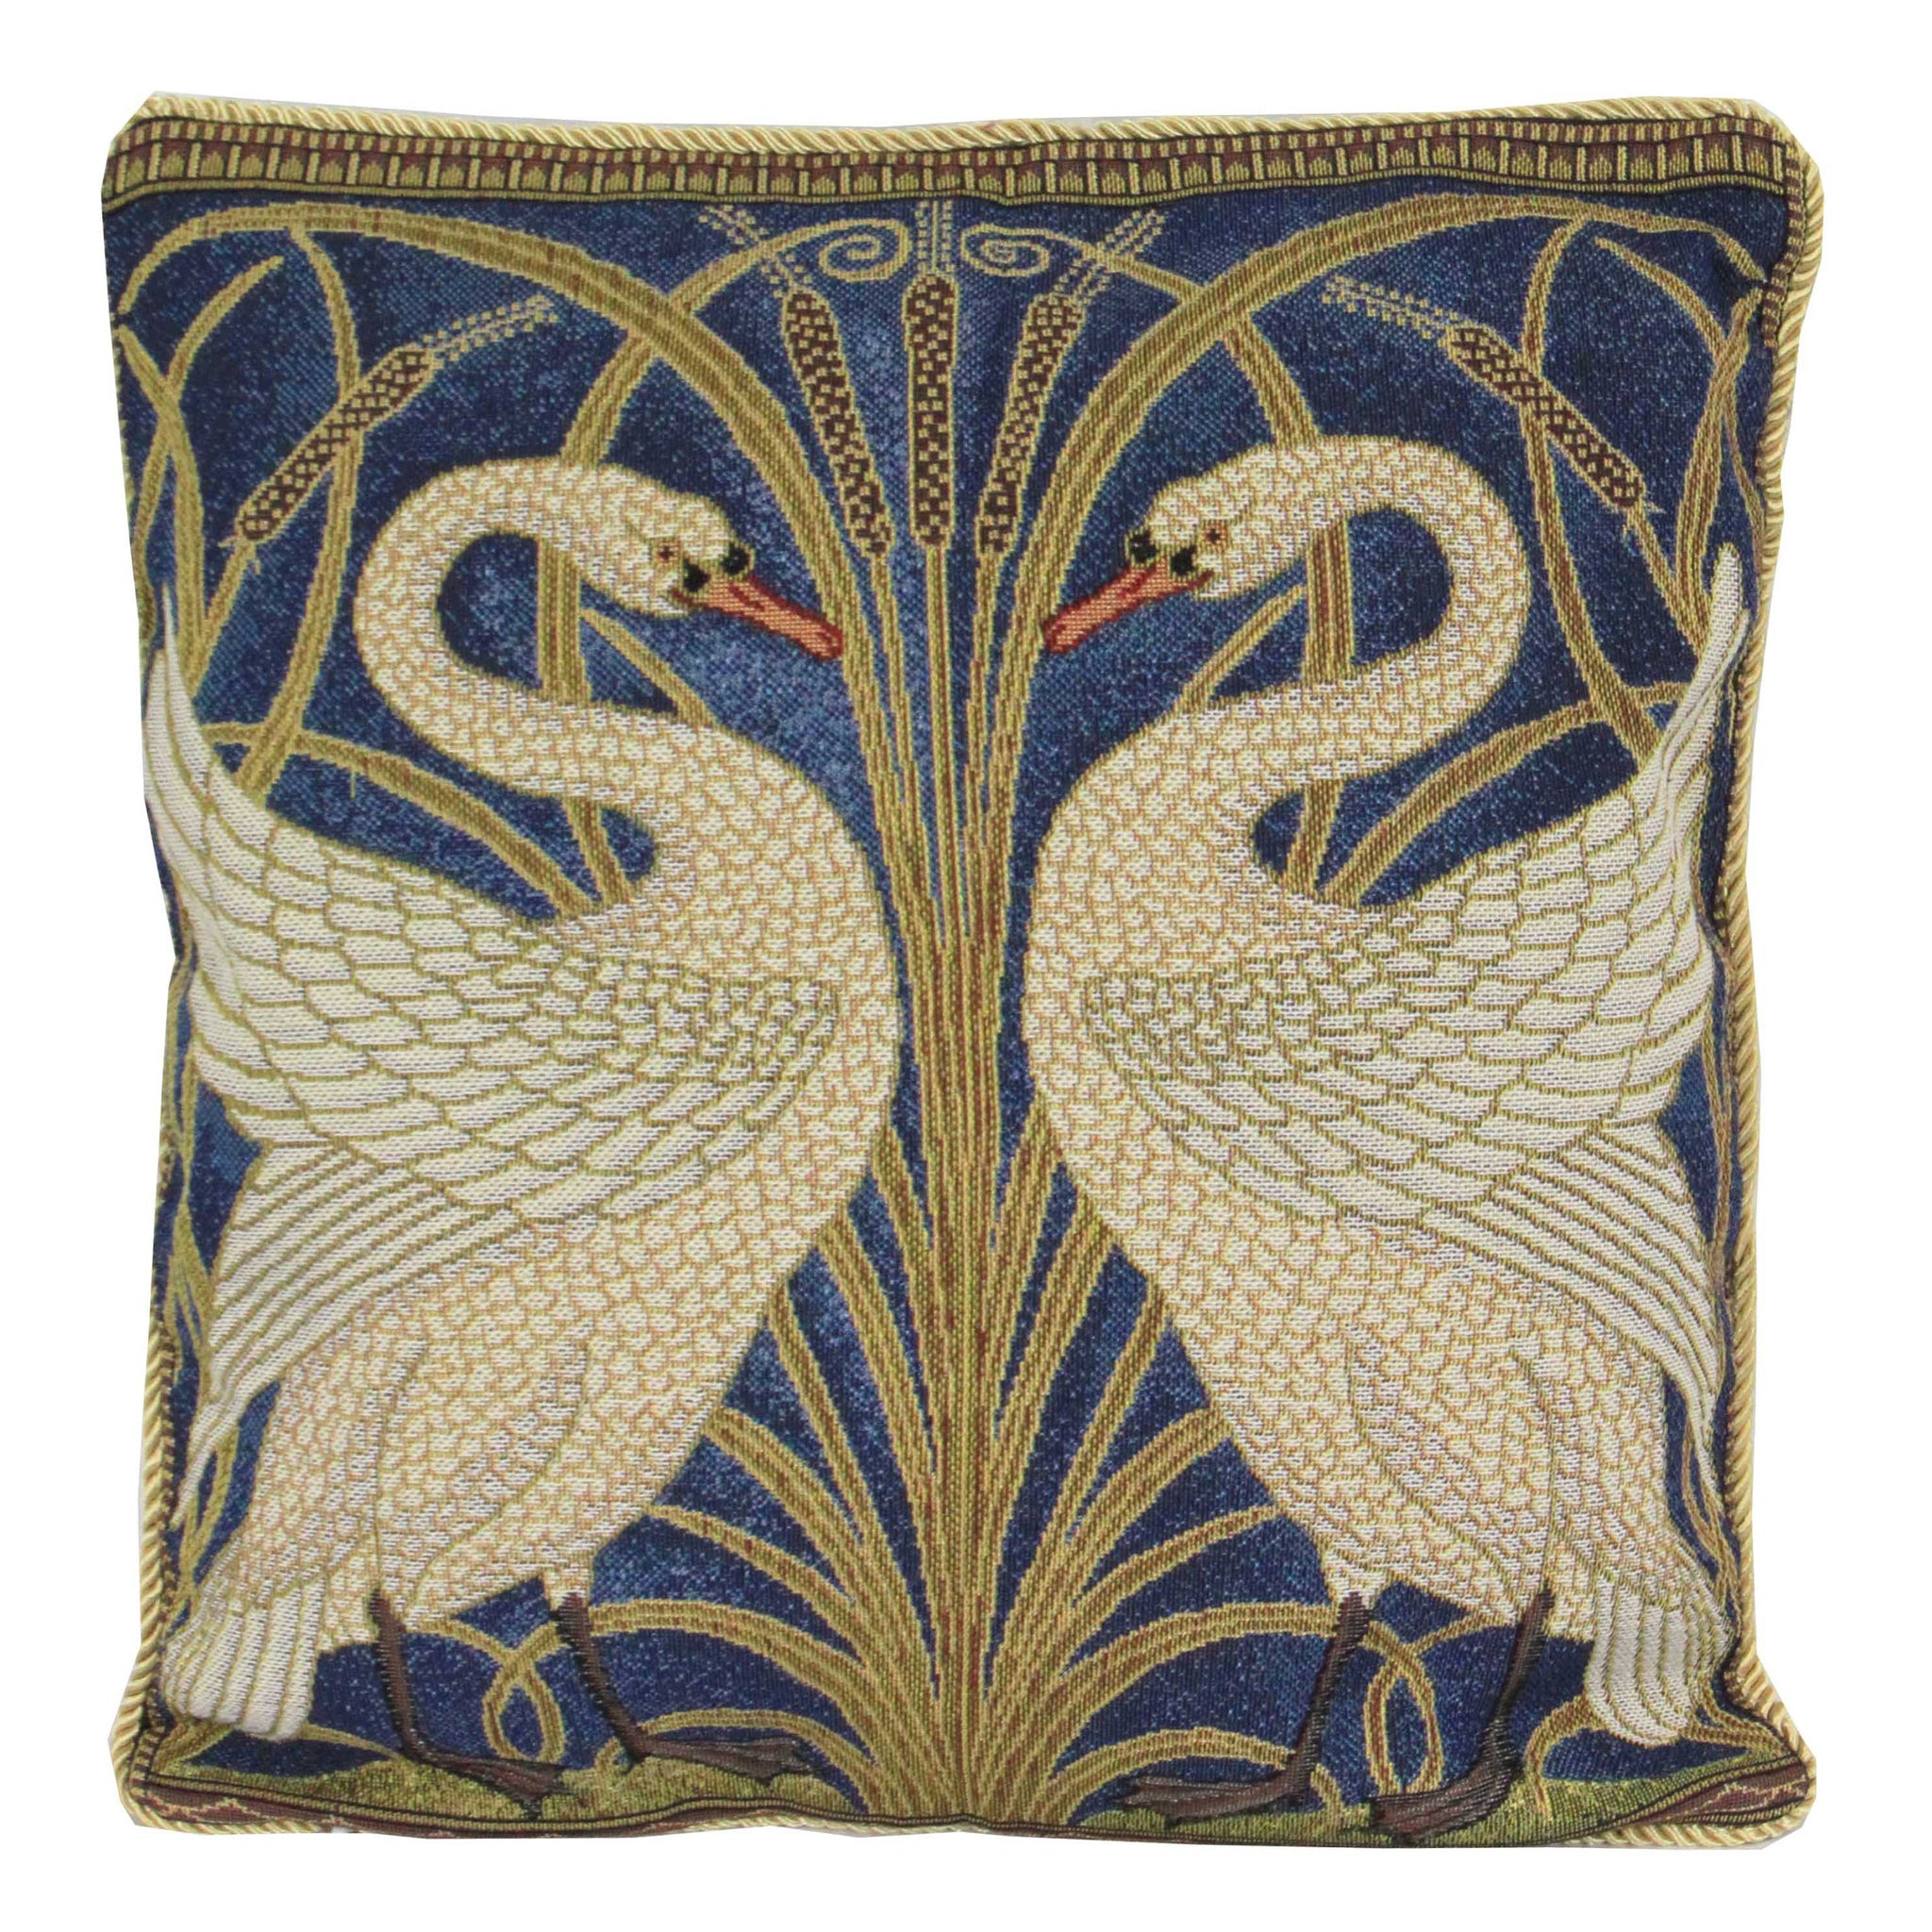 CCOV-ART-WC-SWAN | WALTER CRANE SWAN PILLOWCASE/CUSHION COVER | DECORATIVE DESIGN FASHION HOME PILLOW 18X18 INCH - www.signareusa.com